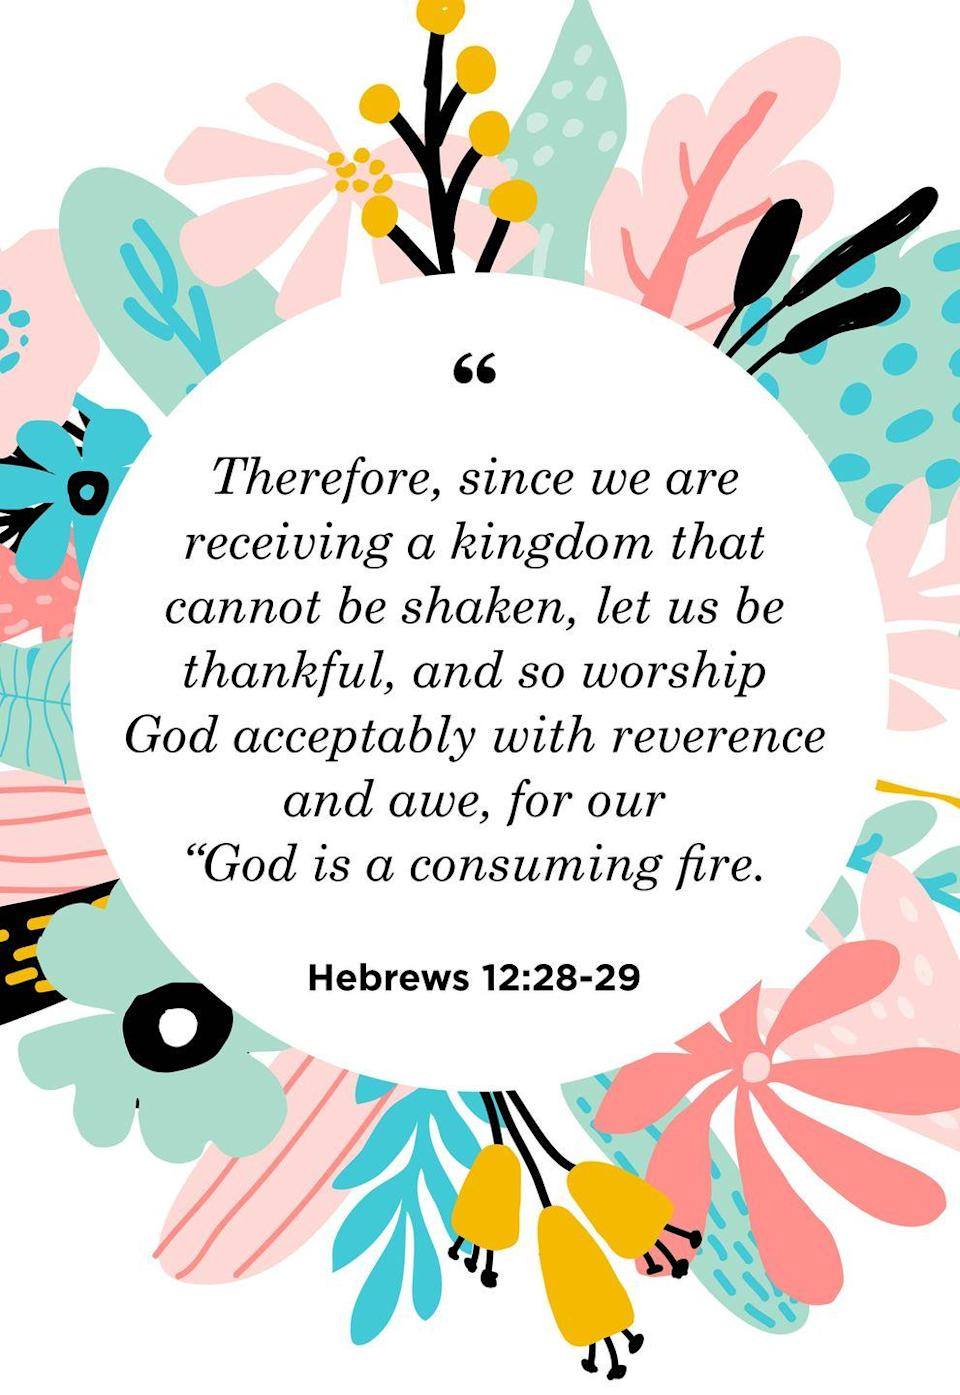 """<p>""""Therefore, since we are receiving a kingdom that cannot be shaken, let us be thankful, and so worship God acceptably with reverence and awe, for our """"God is a consuming fire.""""</p>"""